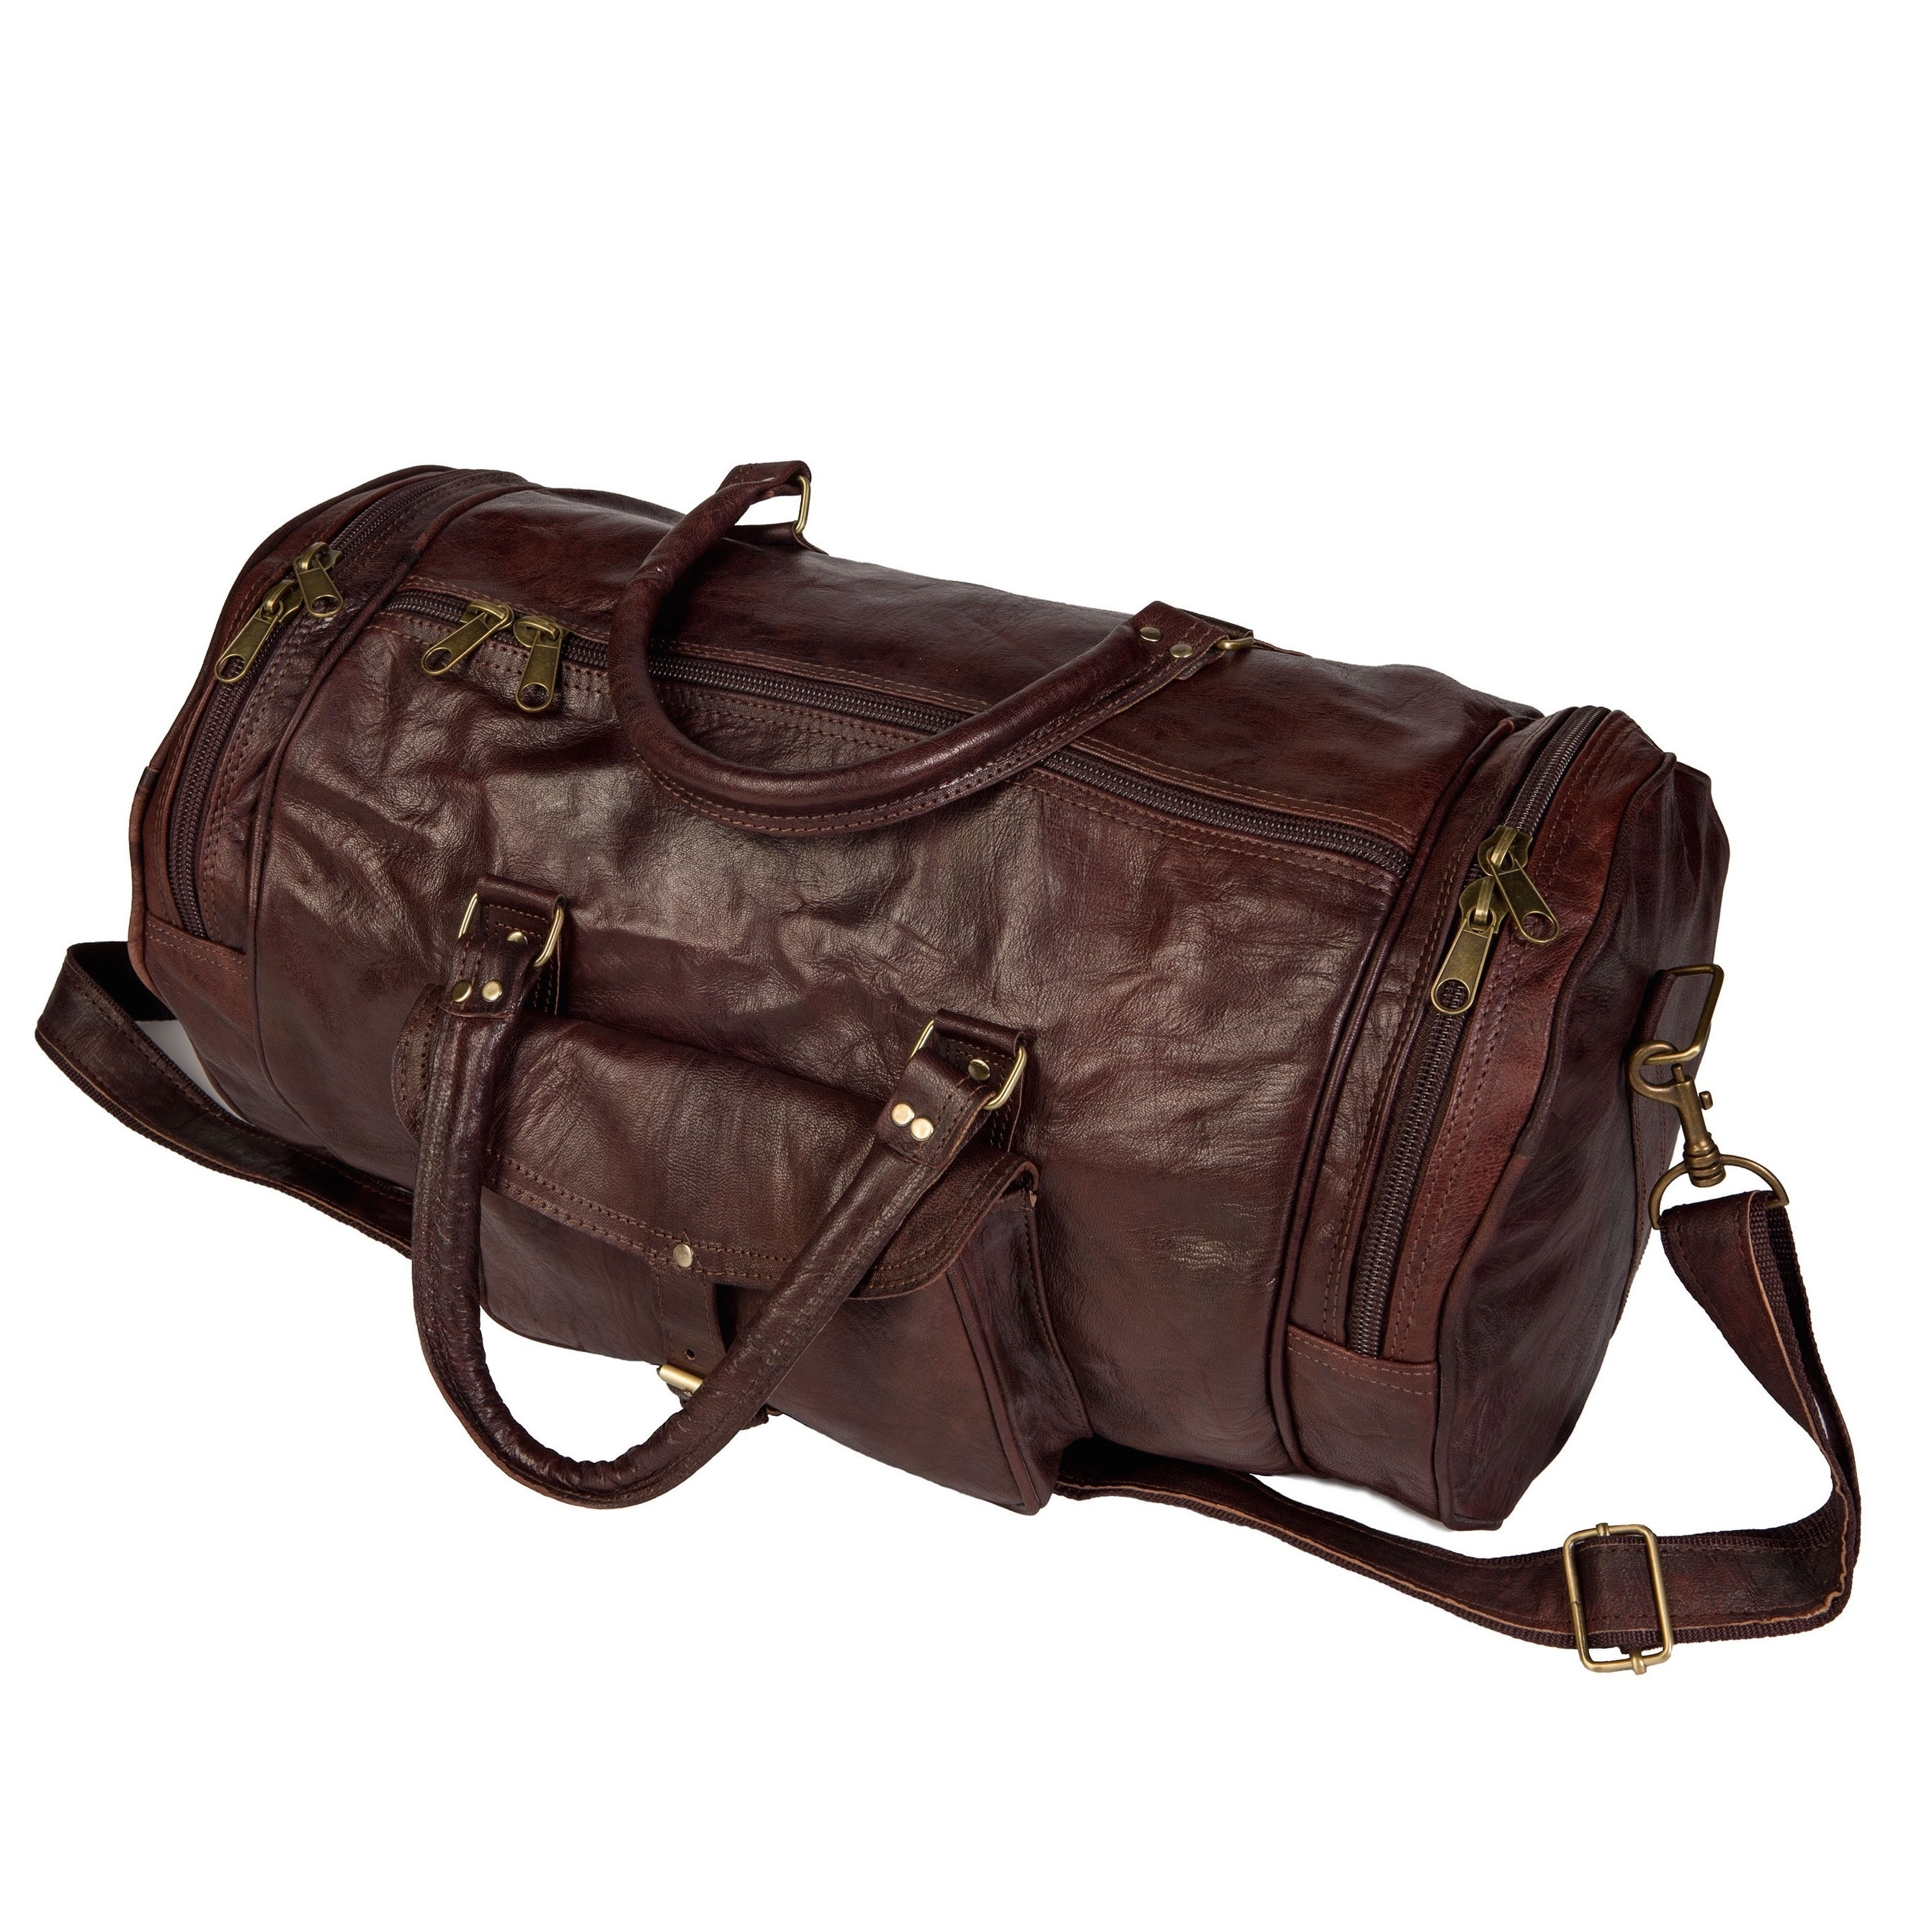 Shop Handmade Round Moroccan Leather Duffel Bag (Morocco) - M - Free  Shipping Today - Overstock - 10529011 3832239668c45